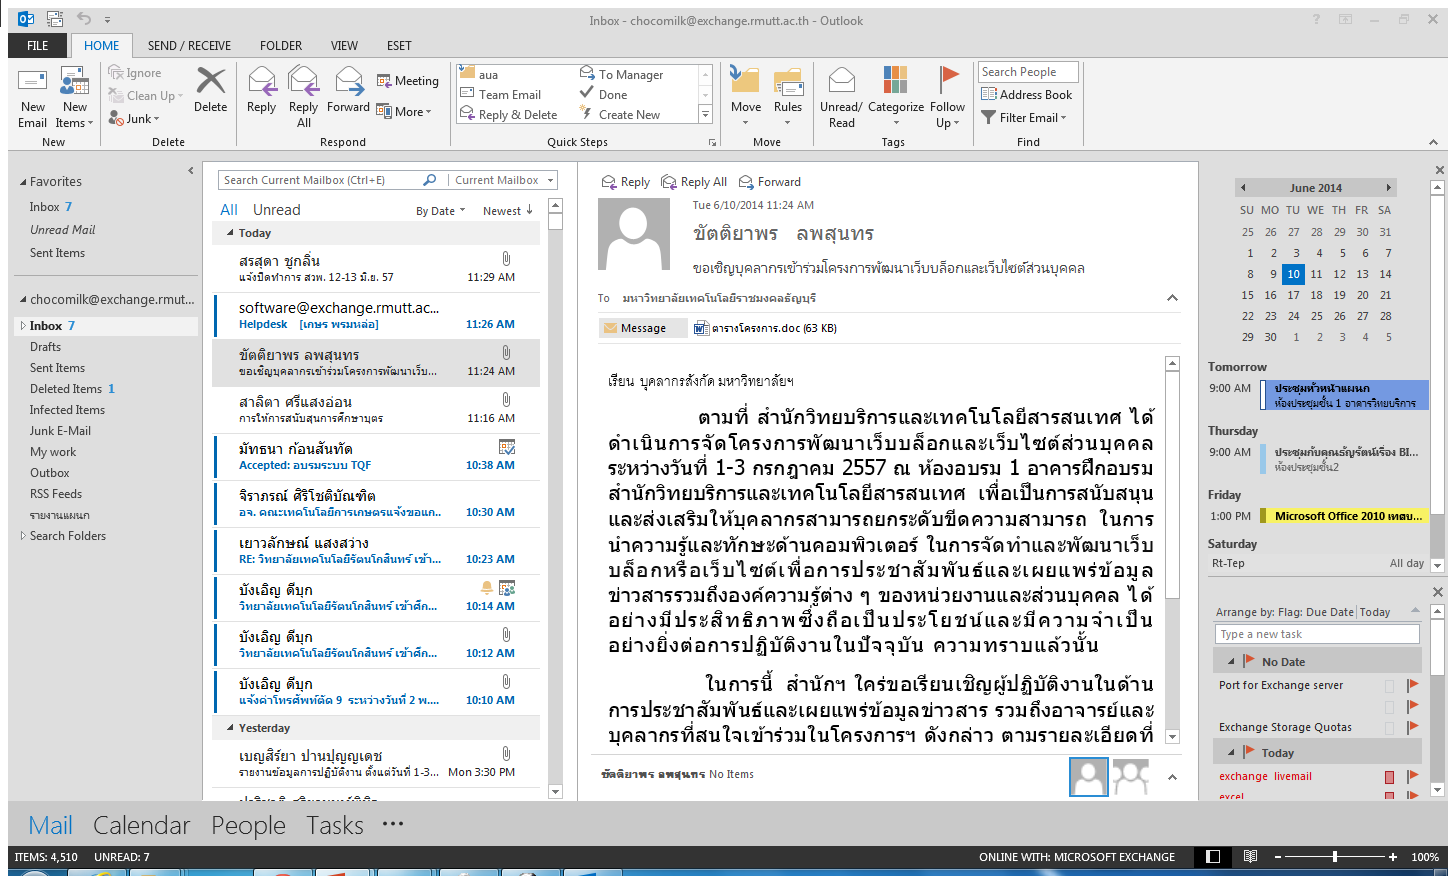 MS Outlook 2010 File tab Quick Access toolbar Content area Ribbon